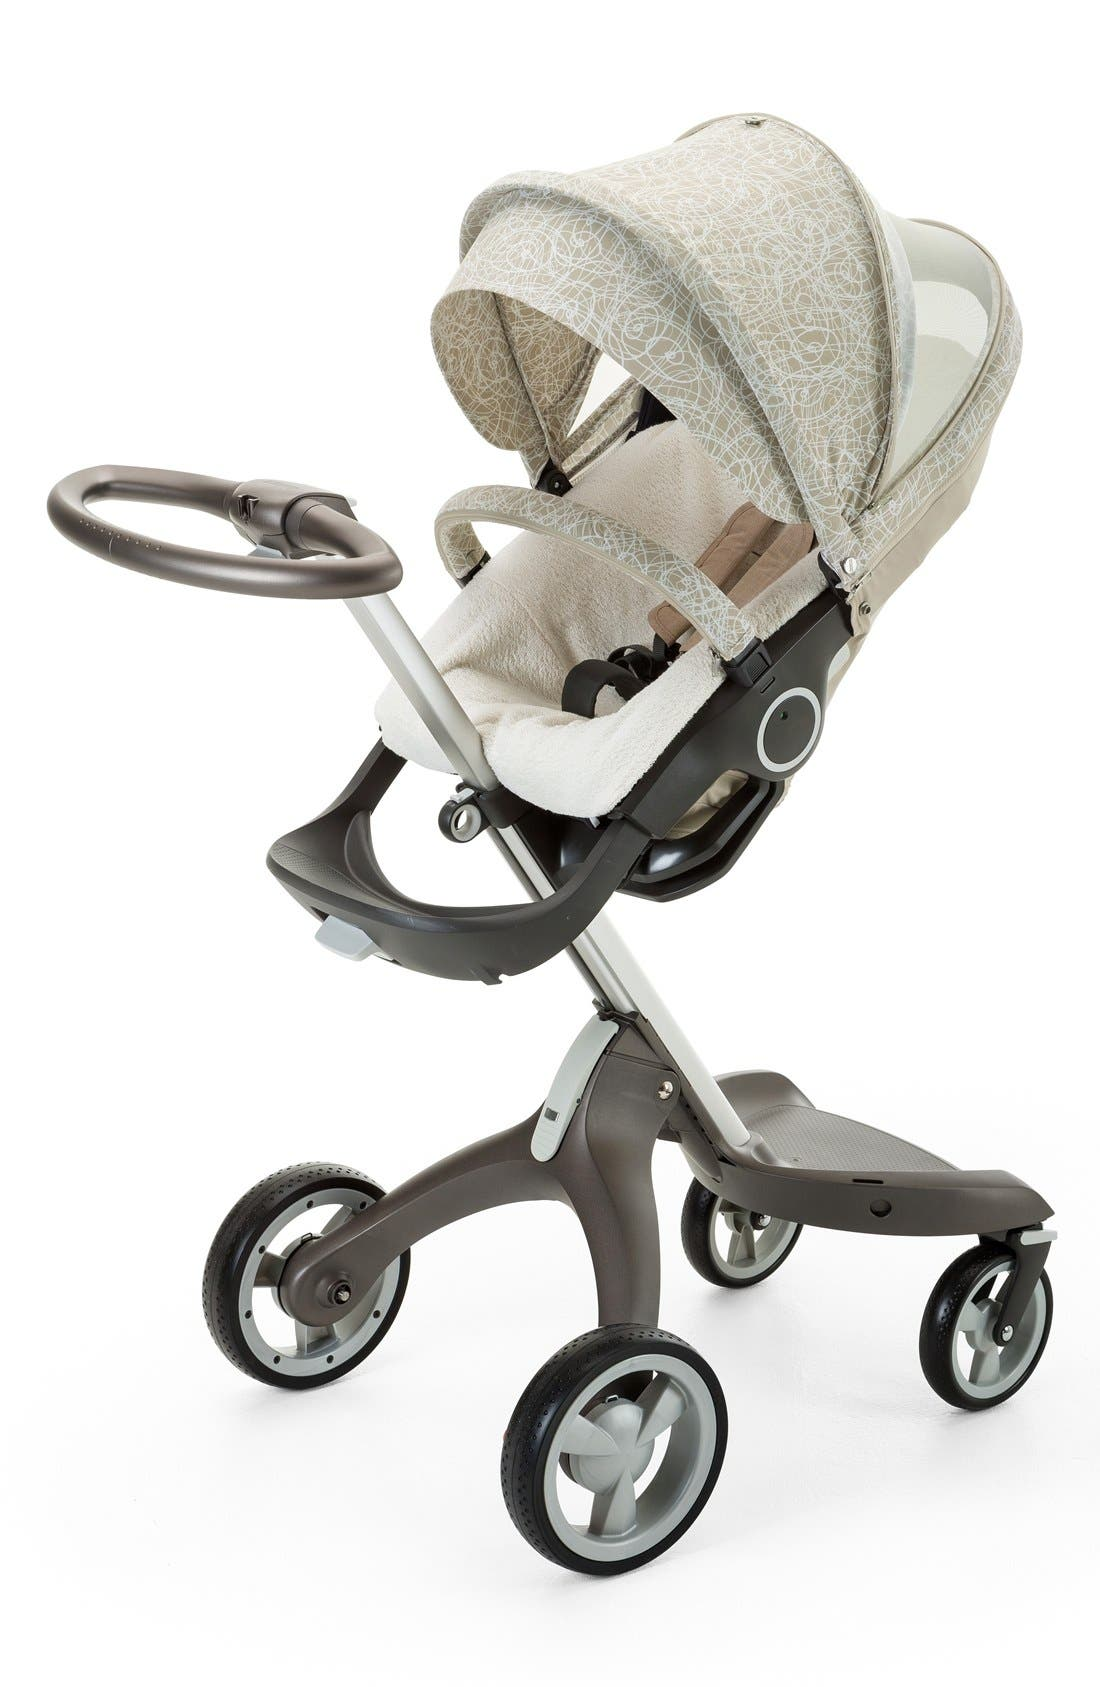 Main Image - Stokke Baby 'Xplory® Stroller Summer Kit' Shade Set